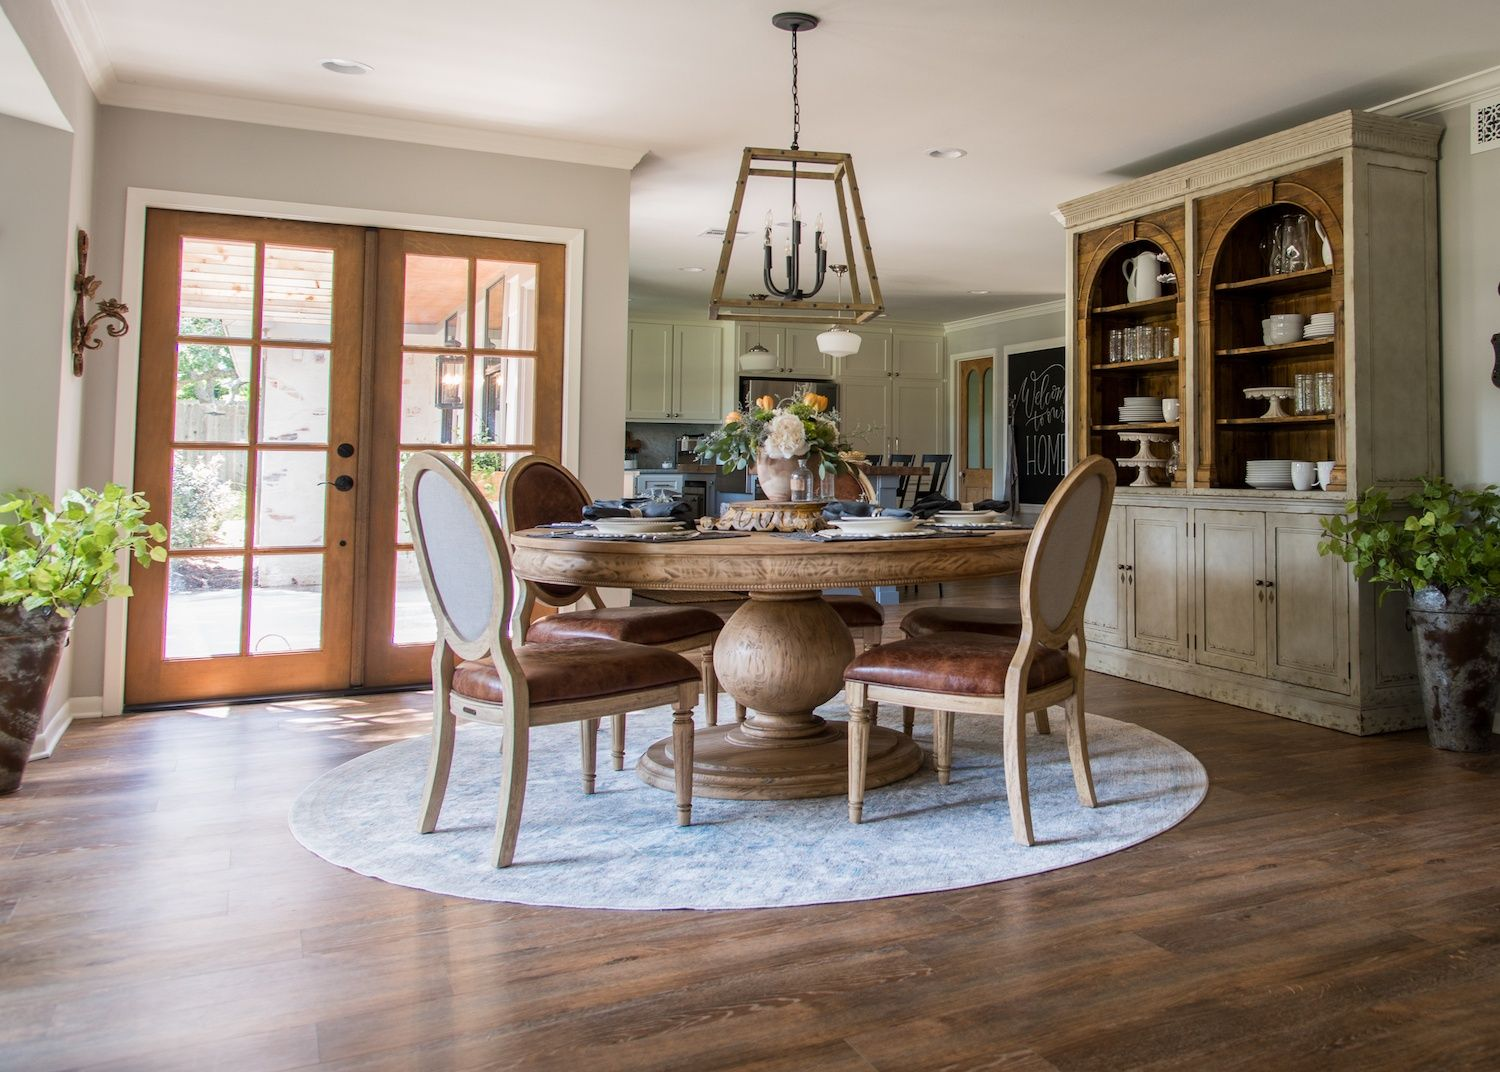 Joanna Gaines Farmhouse Dining Room Episode 11 The Prickly Pear House In 2019 Fixer Upper